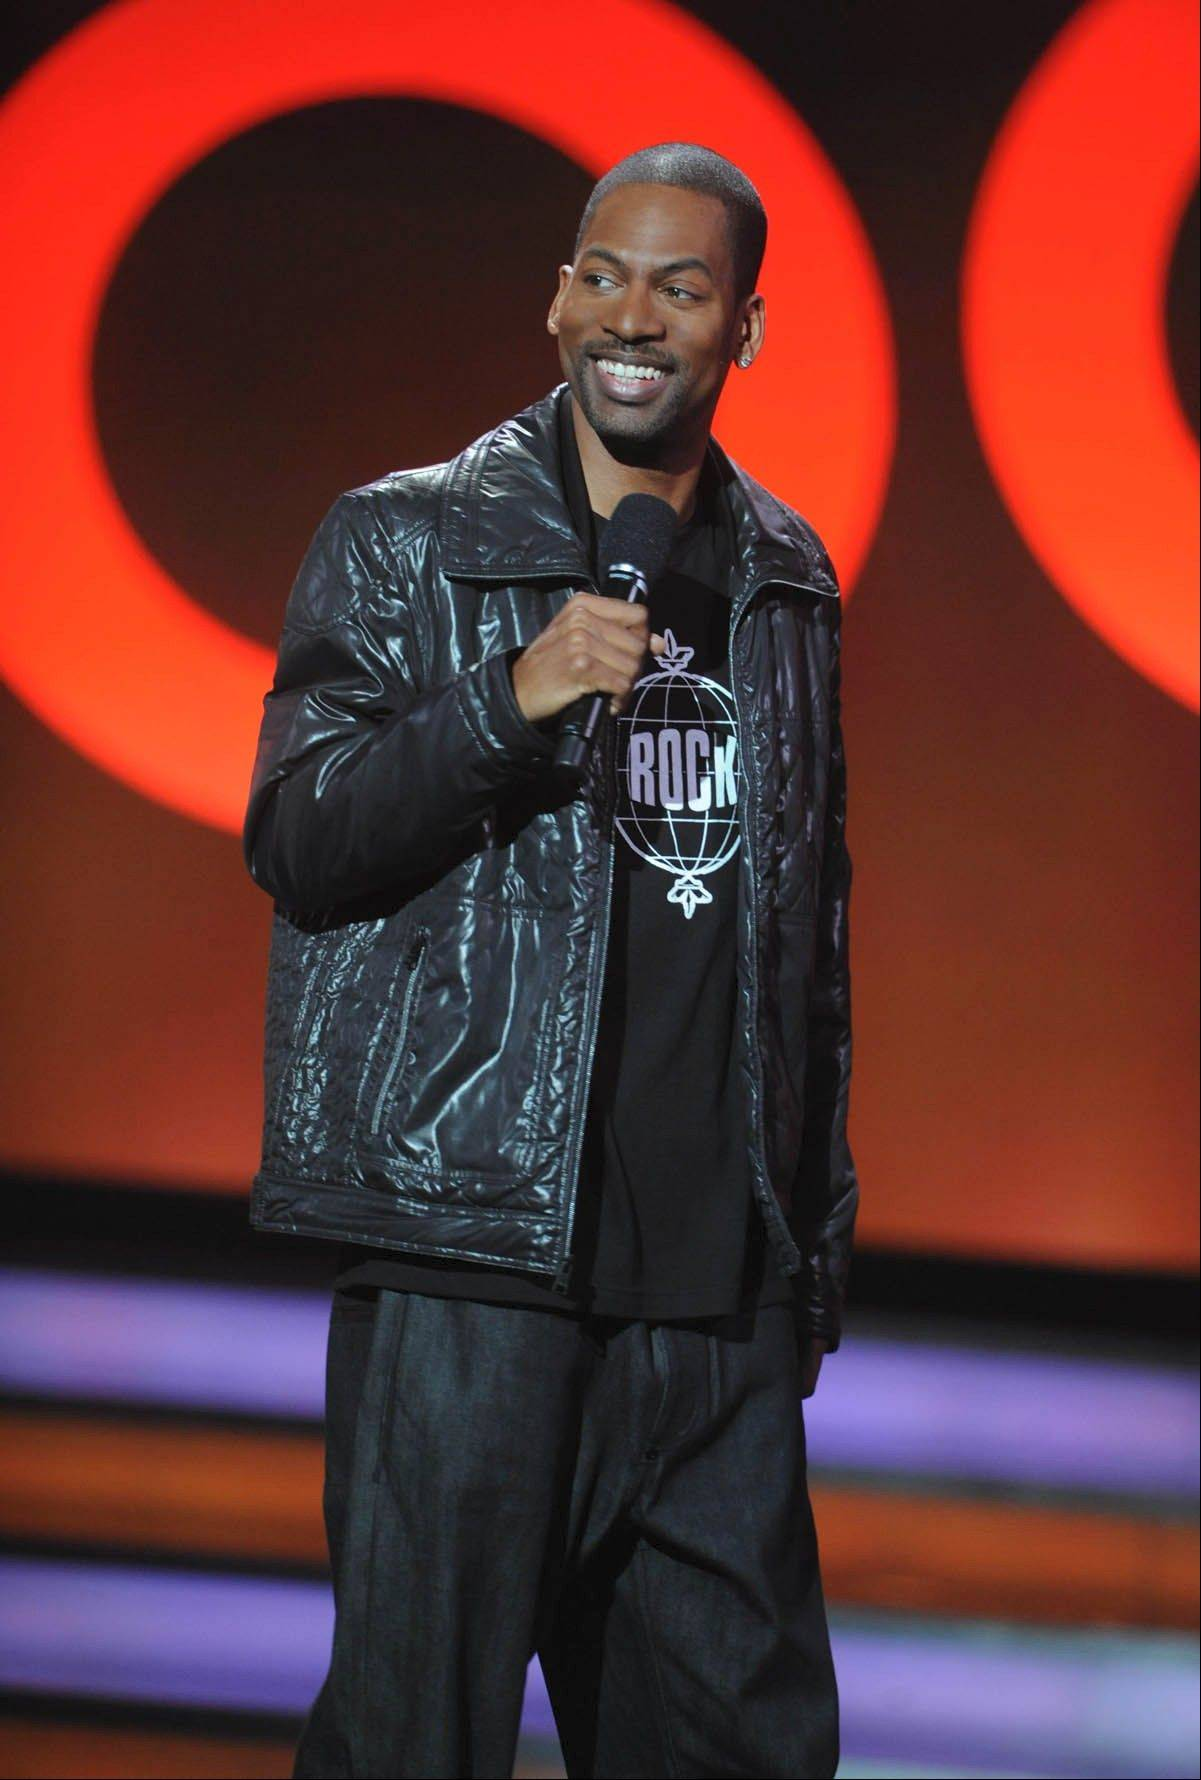 Tony Rock is set to perform at the Improv Comedy Showcase in Schaumburg.